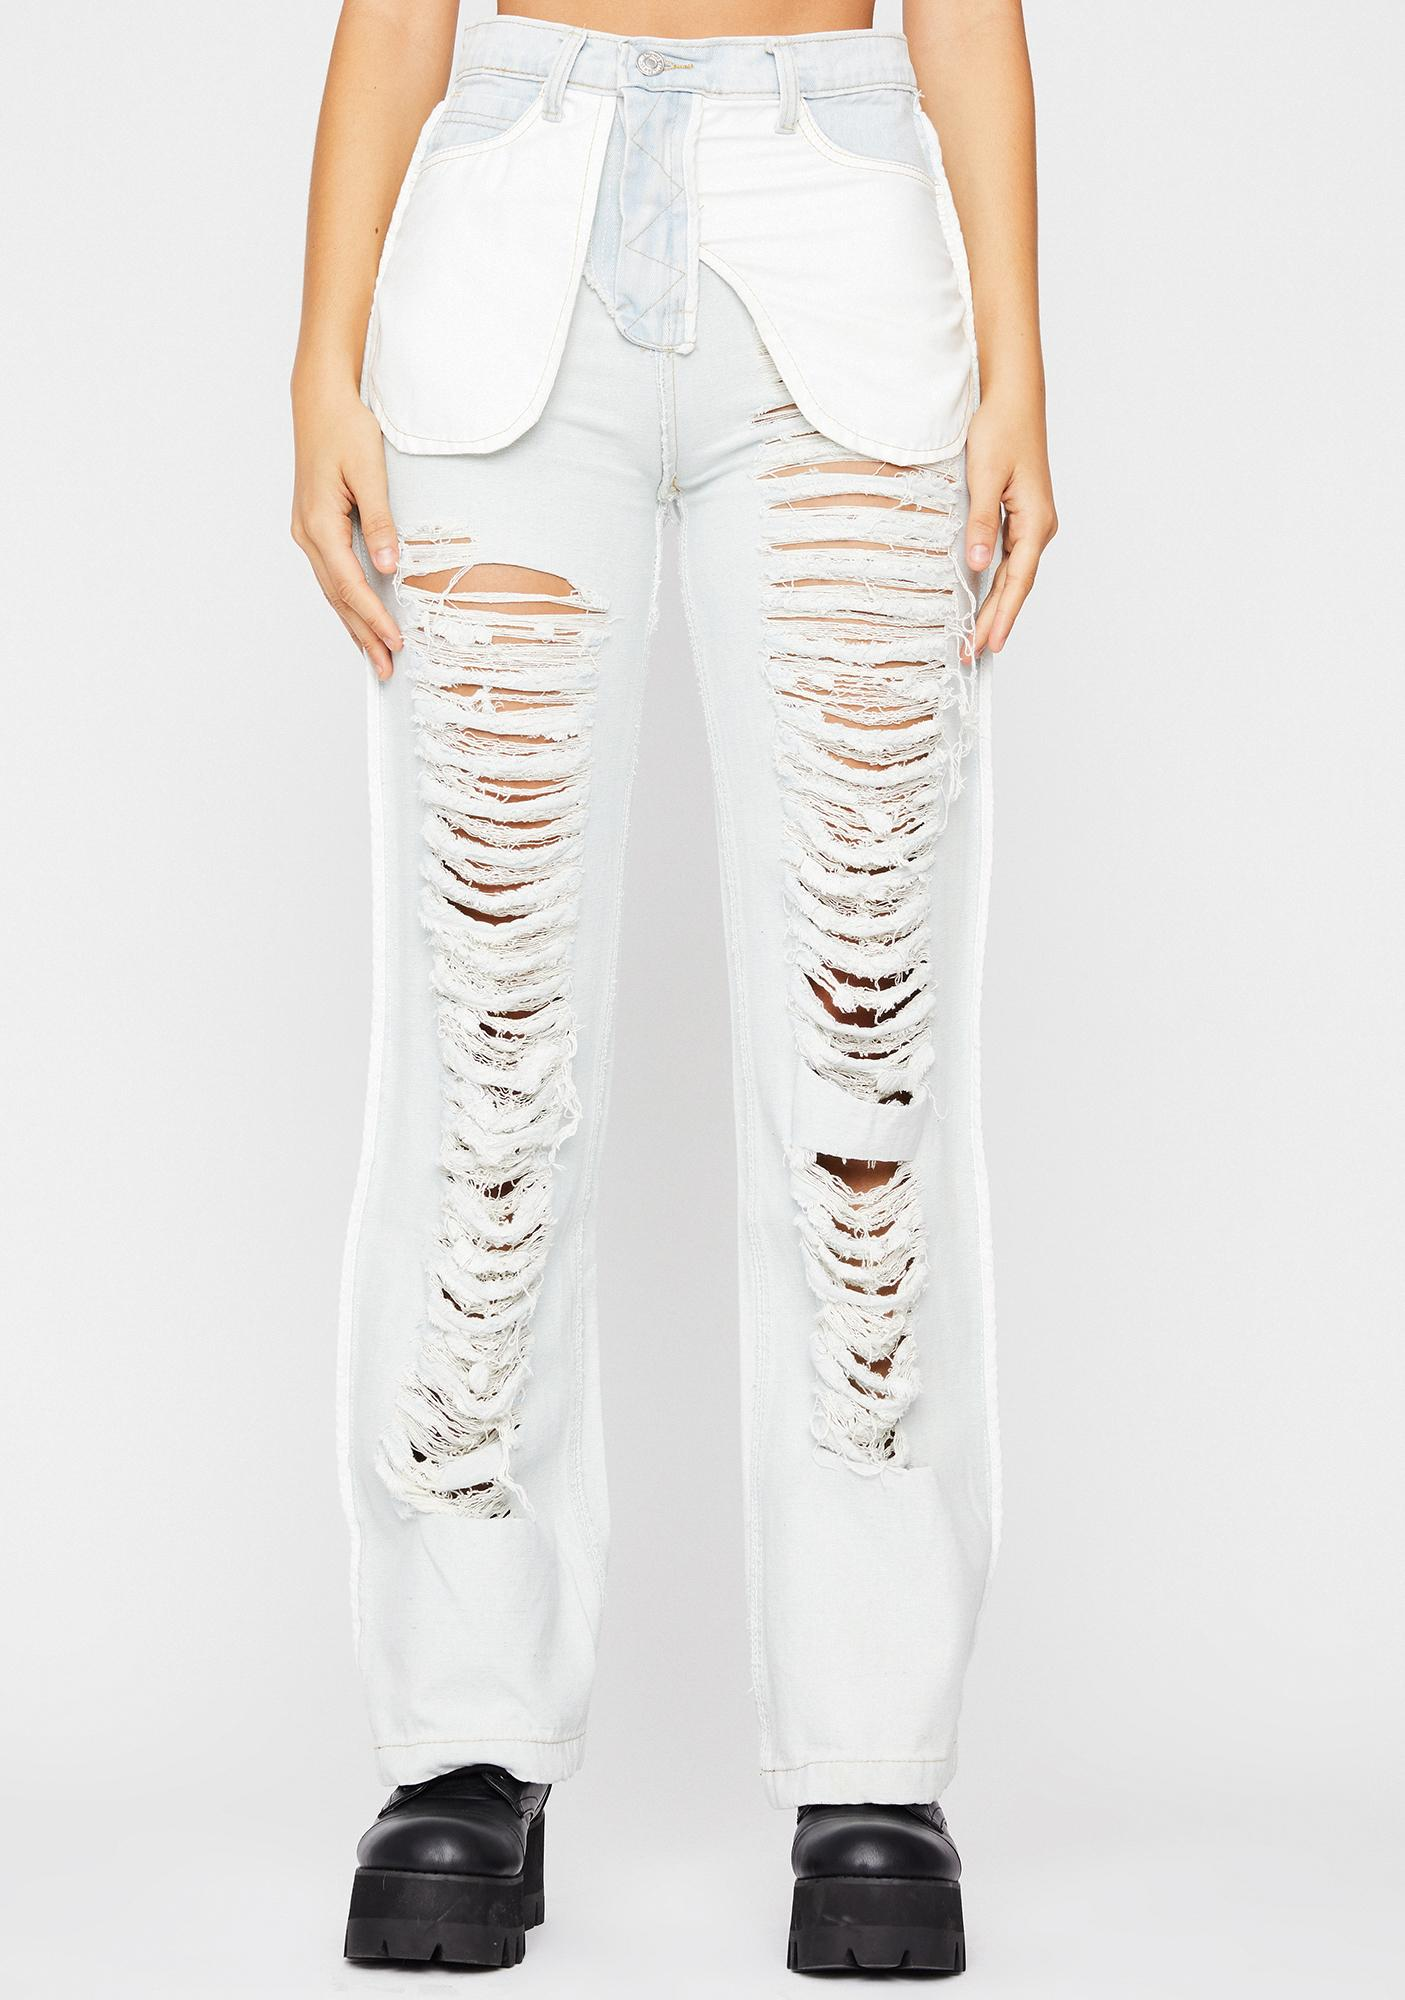 Let's Mosh Ripped Jeans